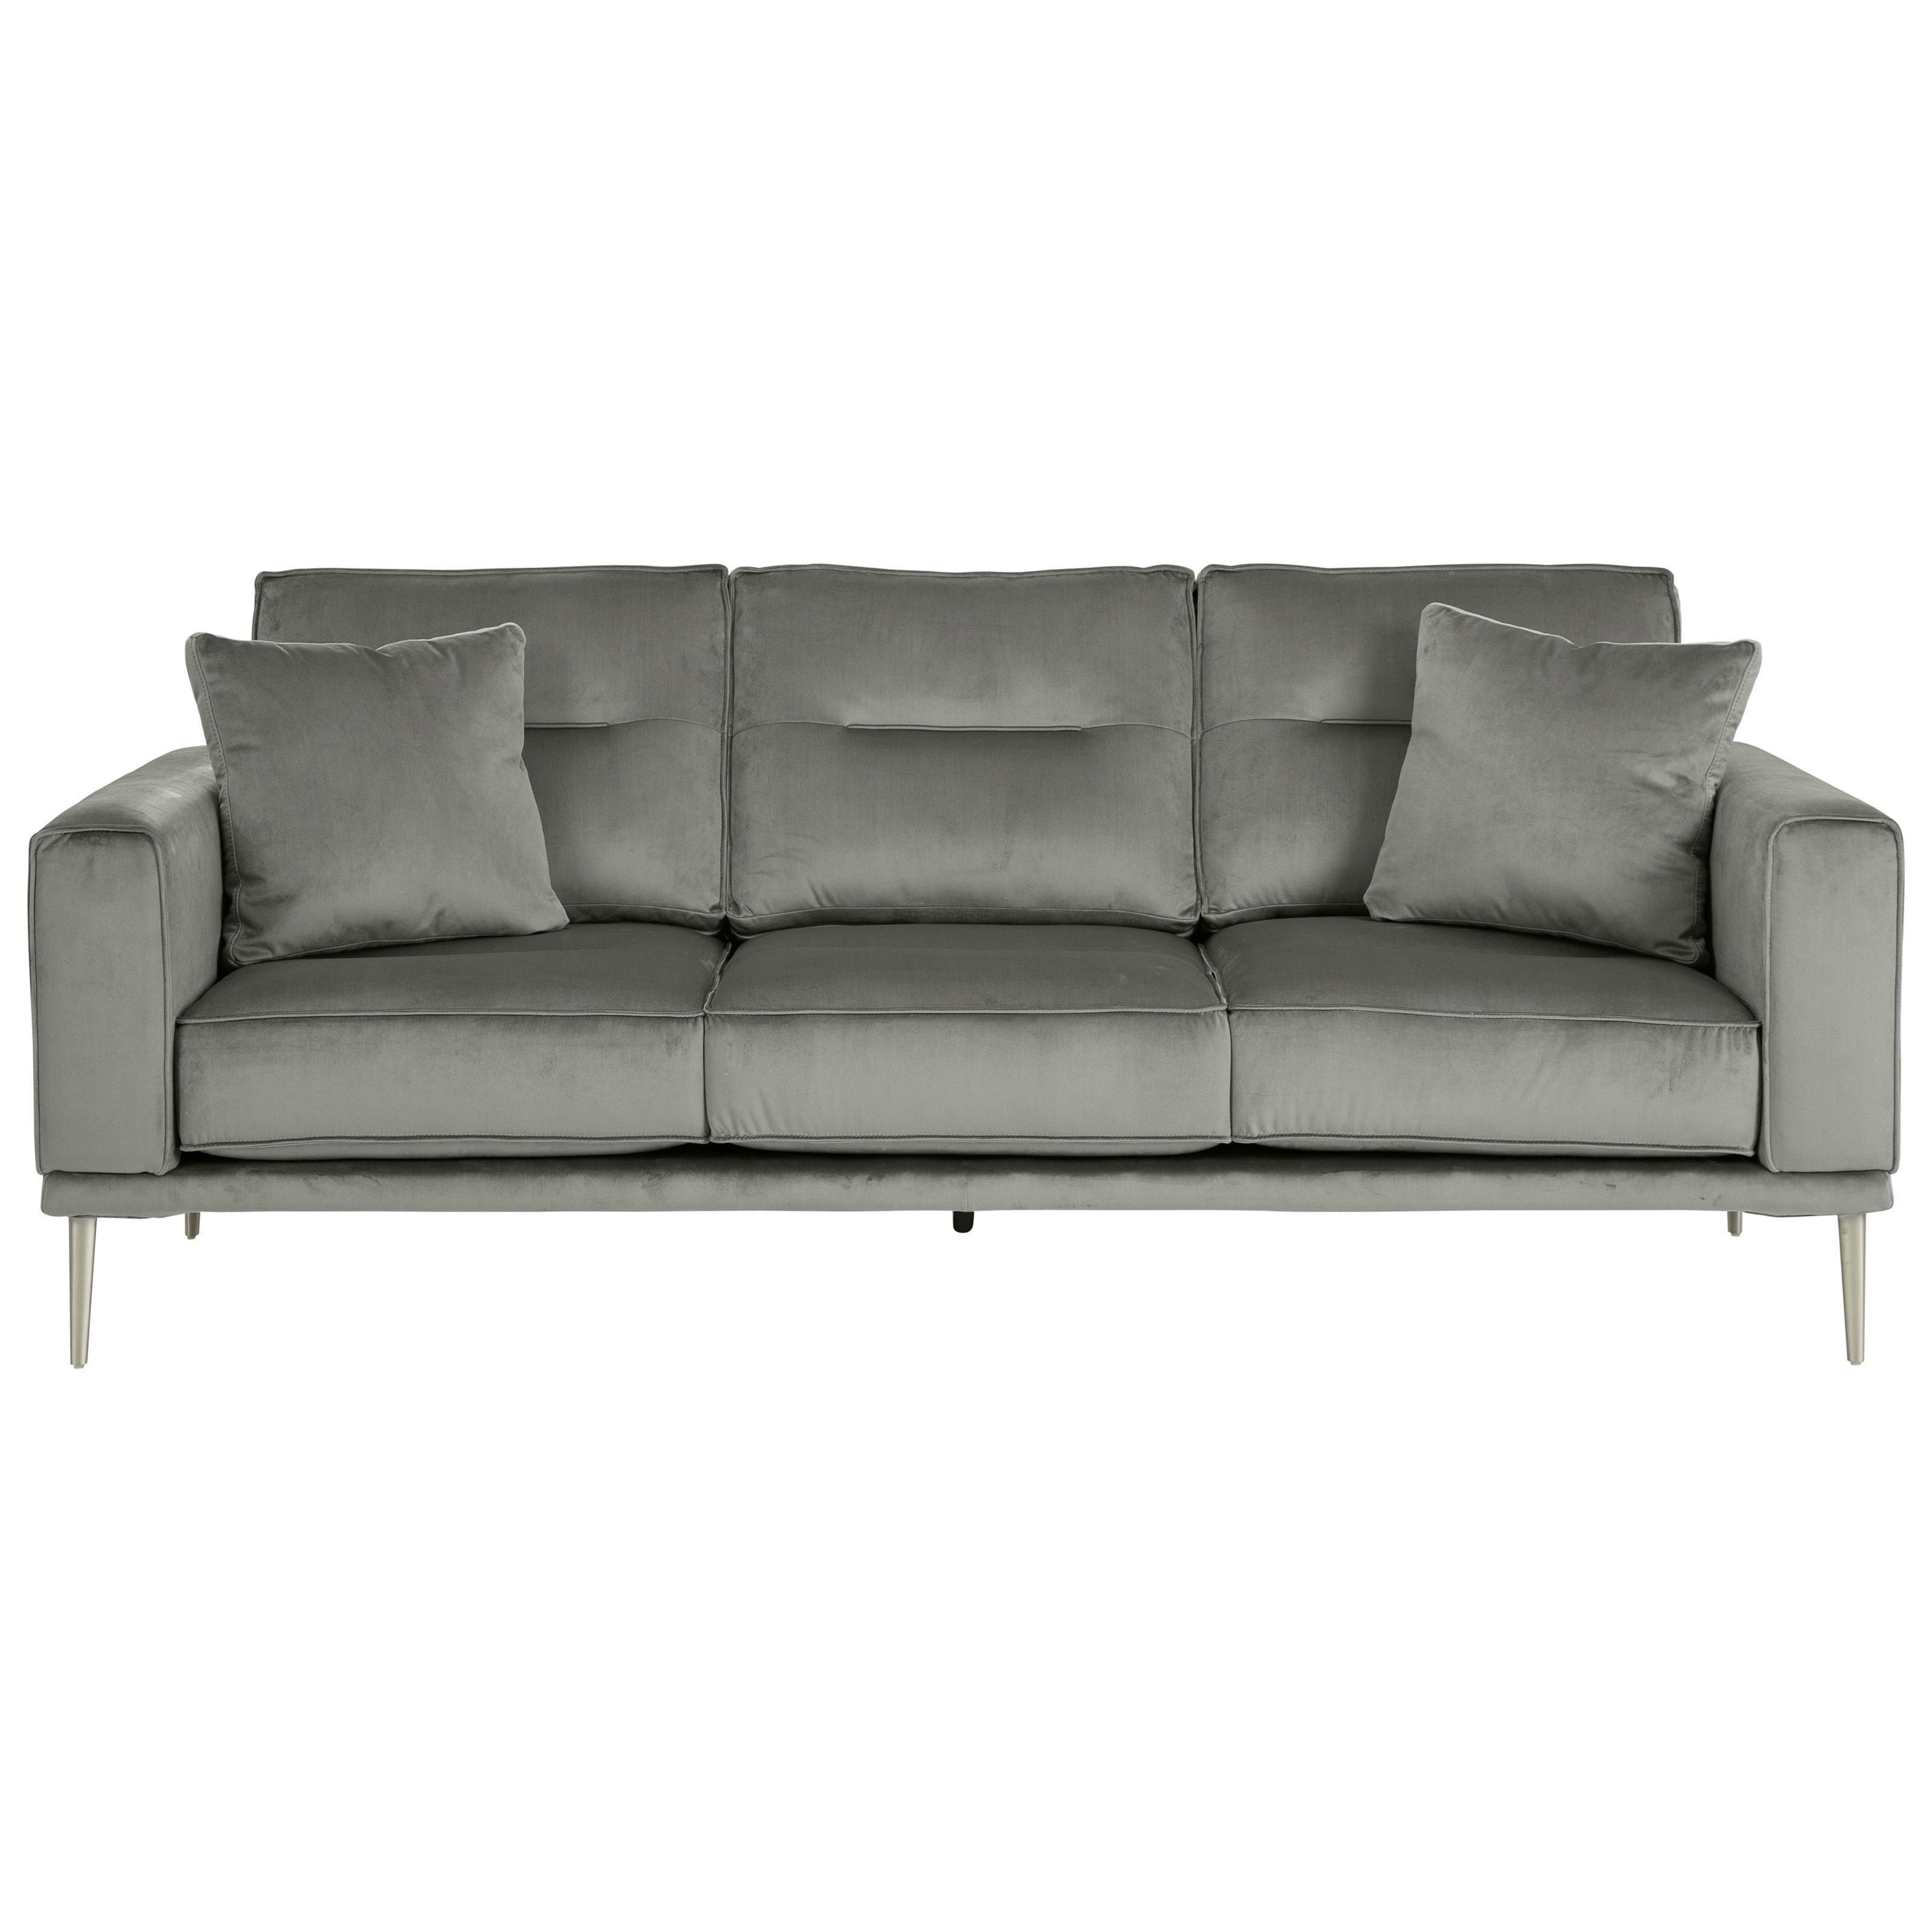 Macleary Sofa by Signature Design by Ashley at Nassau Furniture and Mattress